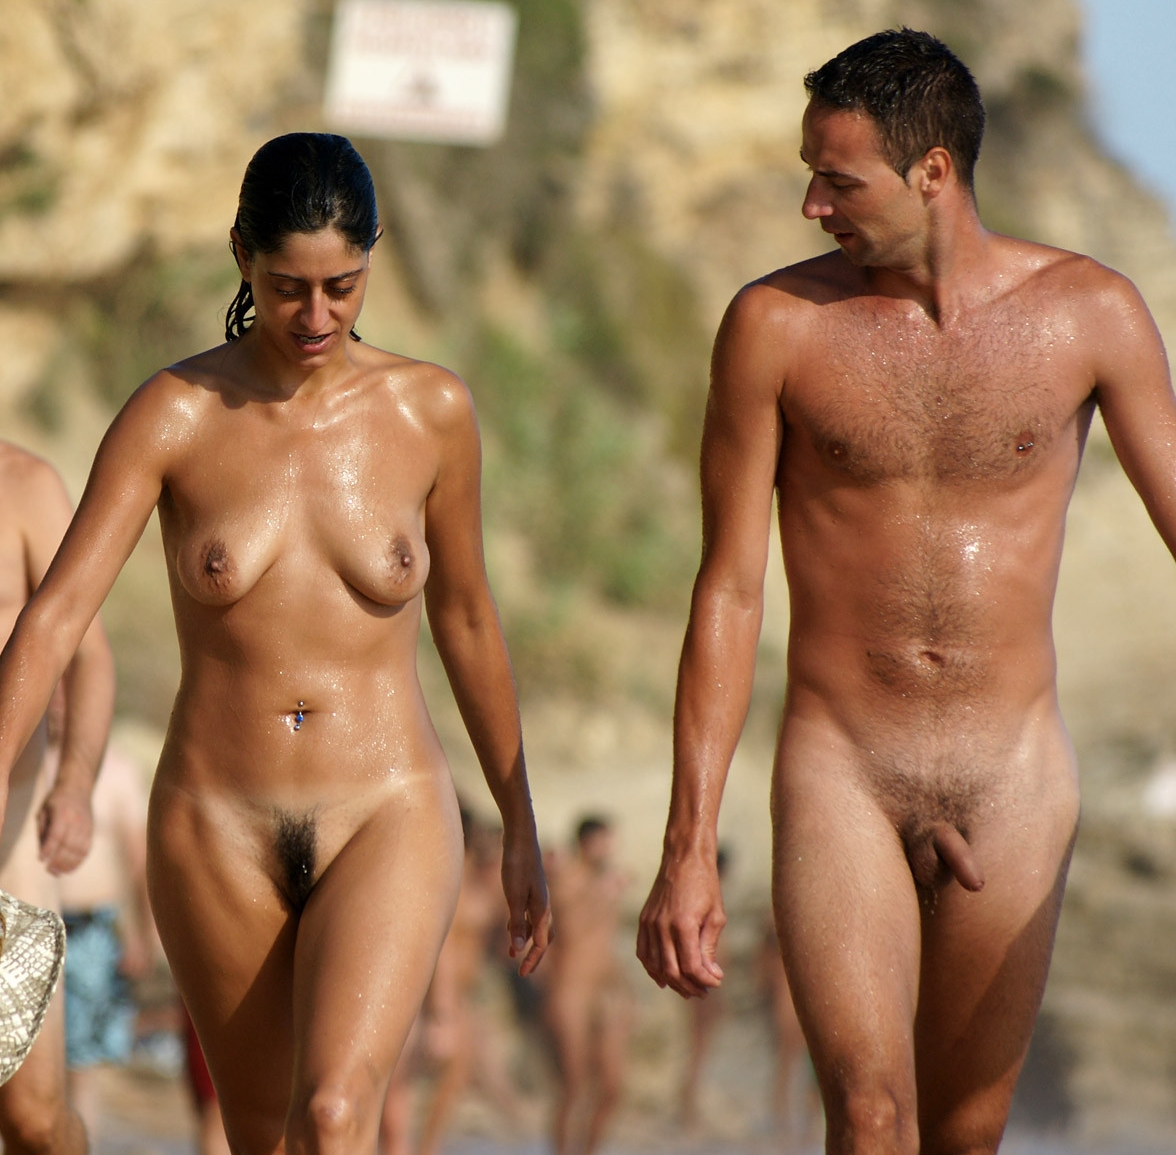 Nude beach pictures men-7962